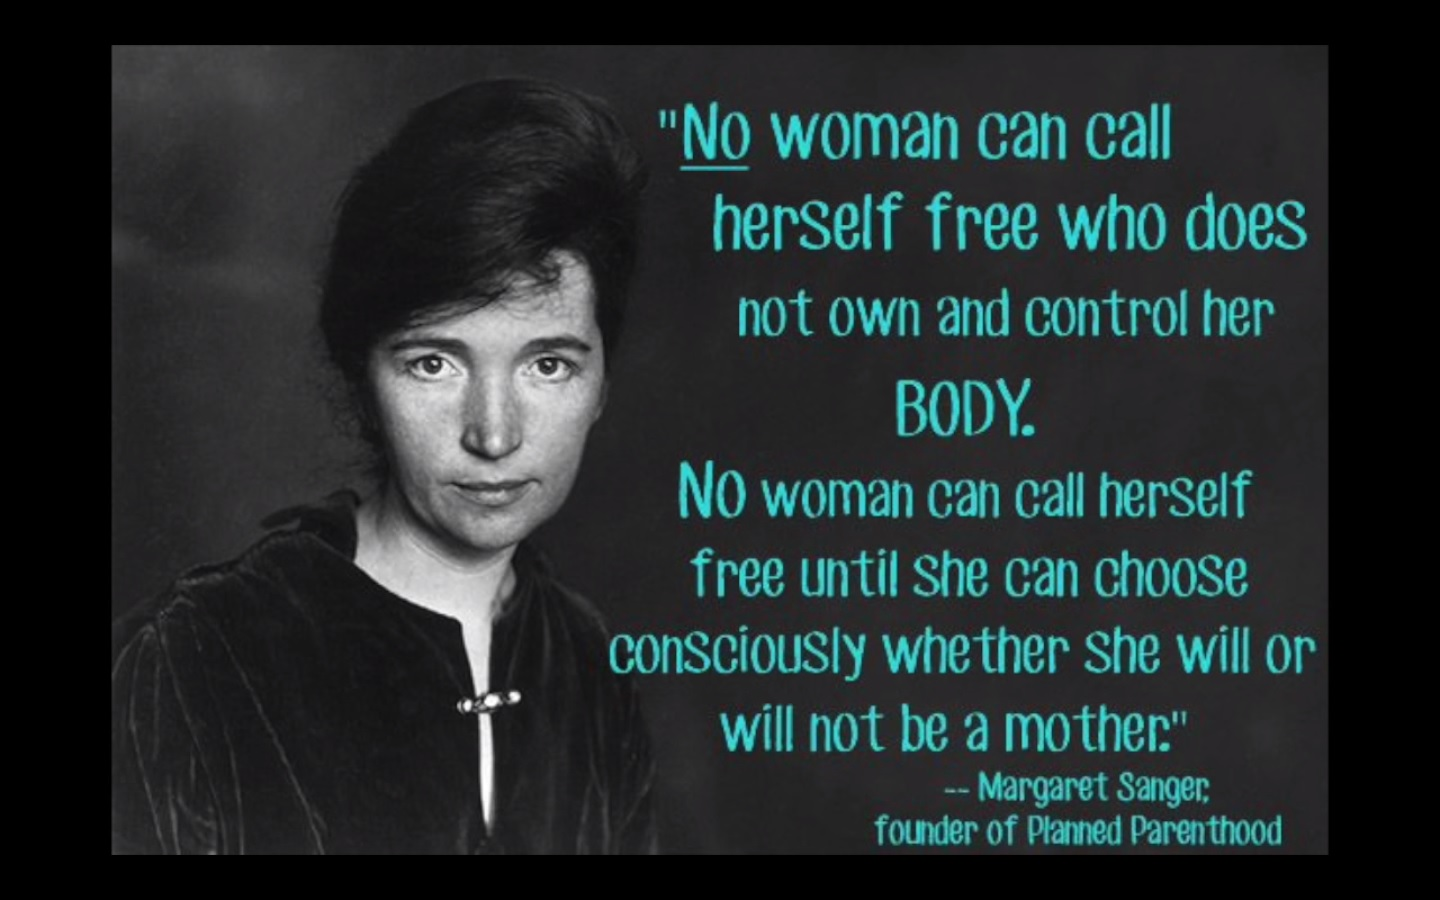 margaret sanger and birth control history essay Essays on margaret sanger (margaret sanger) when the history of our civilization is written, it will be a biological history and margaret sanger will be its heroine margaret sanger who offered birth control to women as an act of civil disobedience.